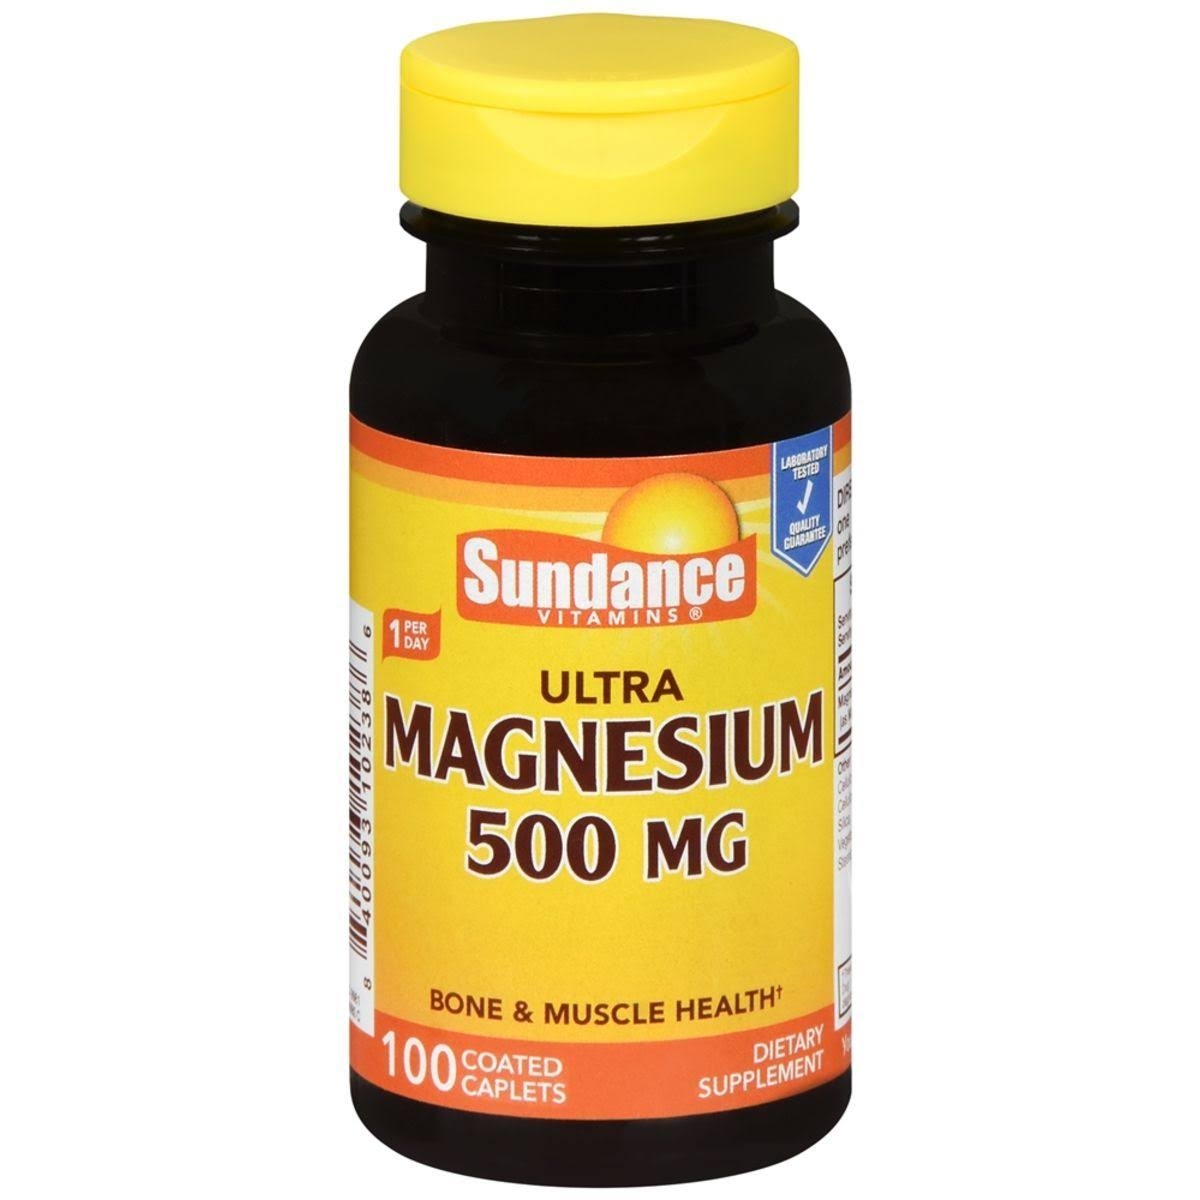 Sundance Ultra Magnesium Dietary Supplement - 500mg, 100ct